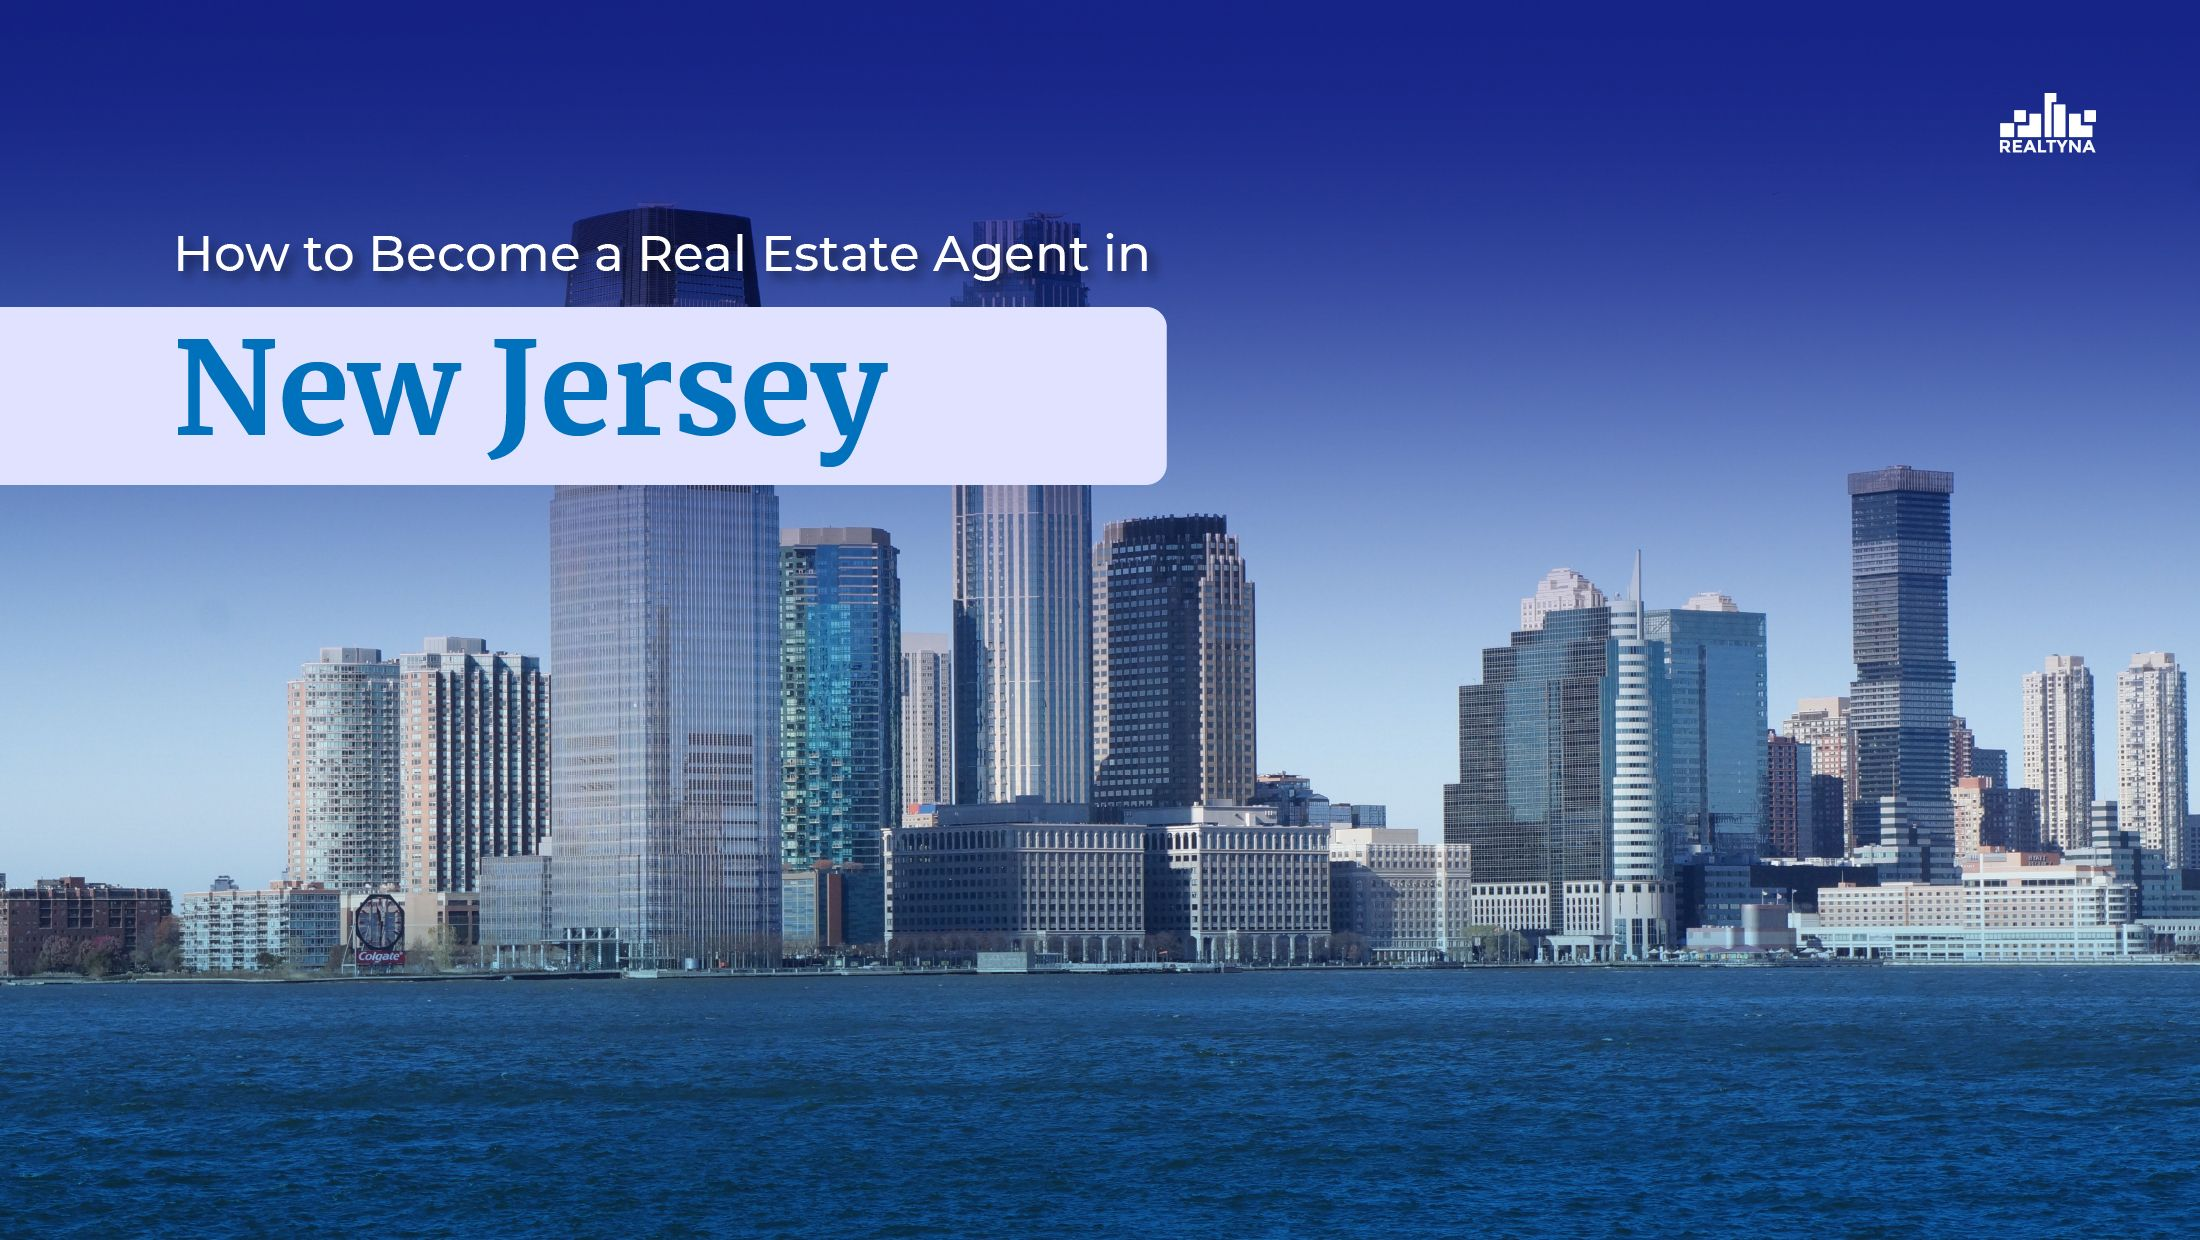 Real Estate Agent in New Jersey